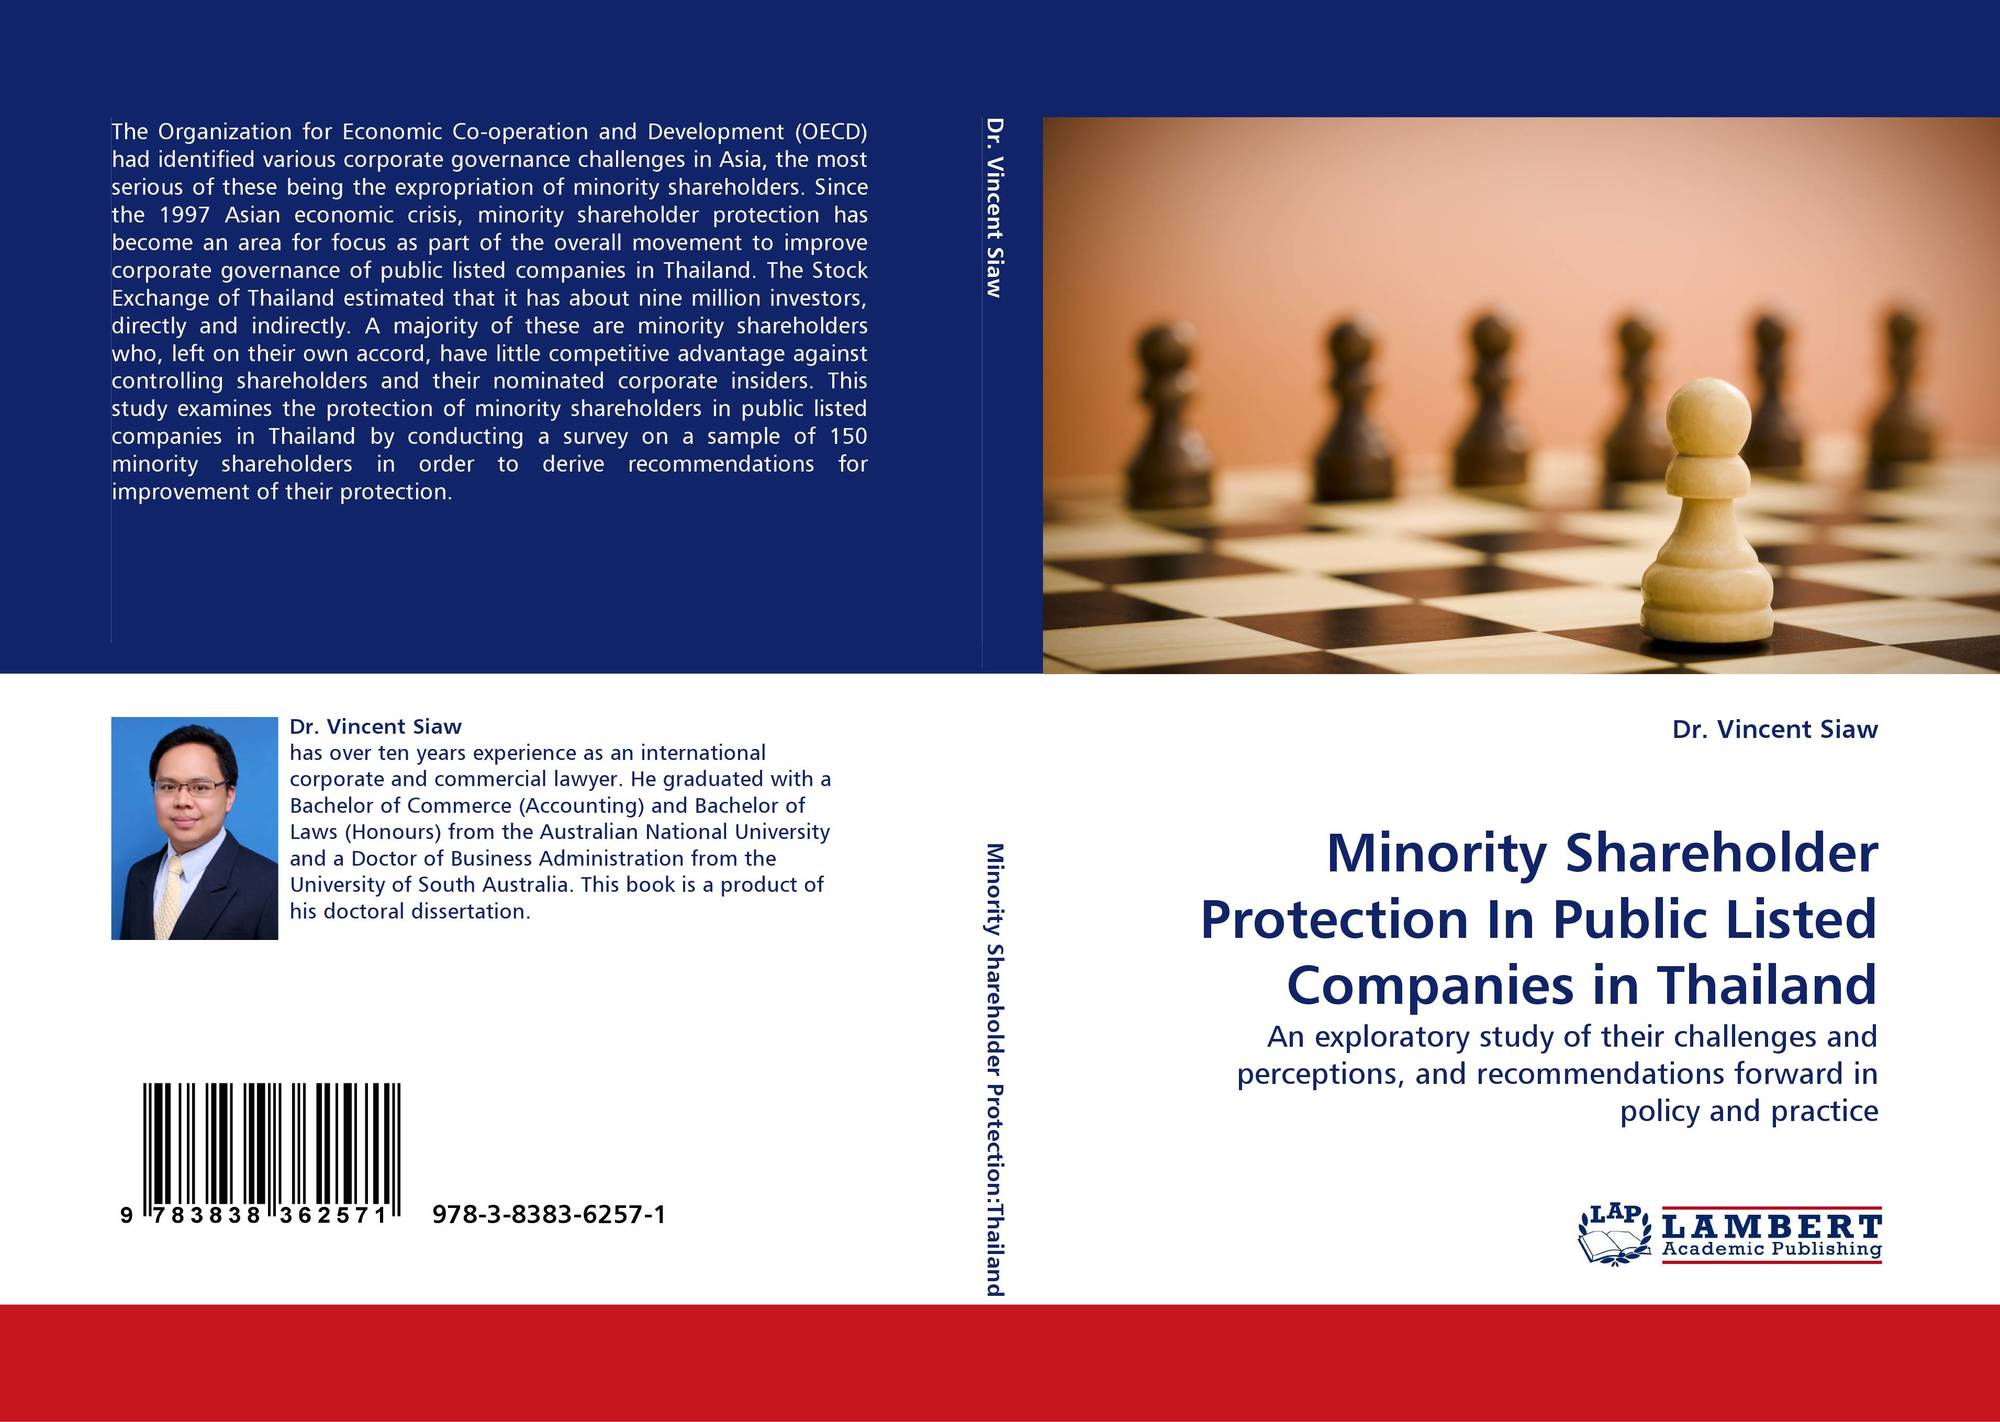 Minority Shareholder Protection In Public Listed Companies